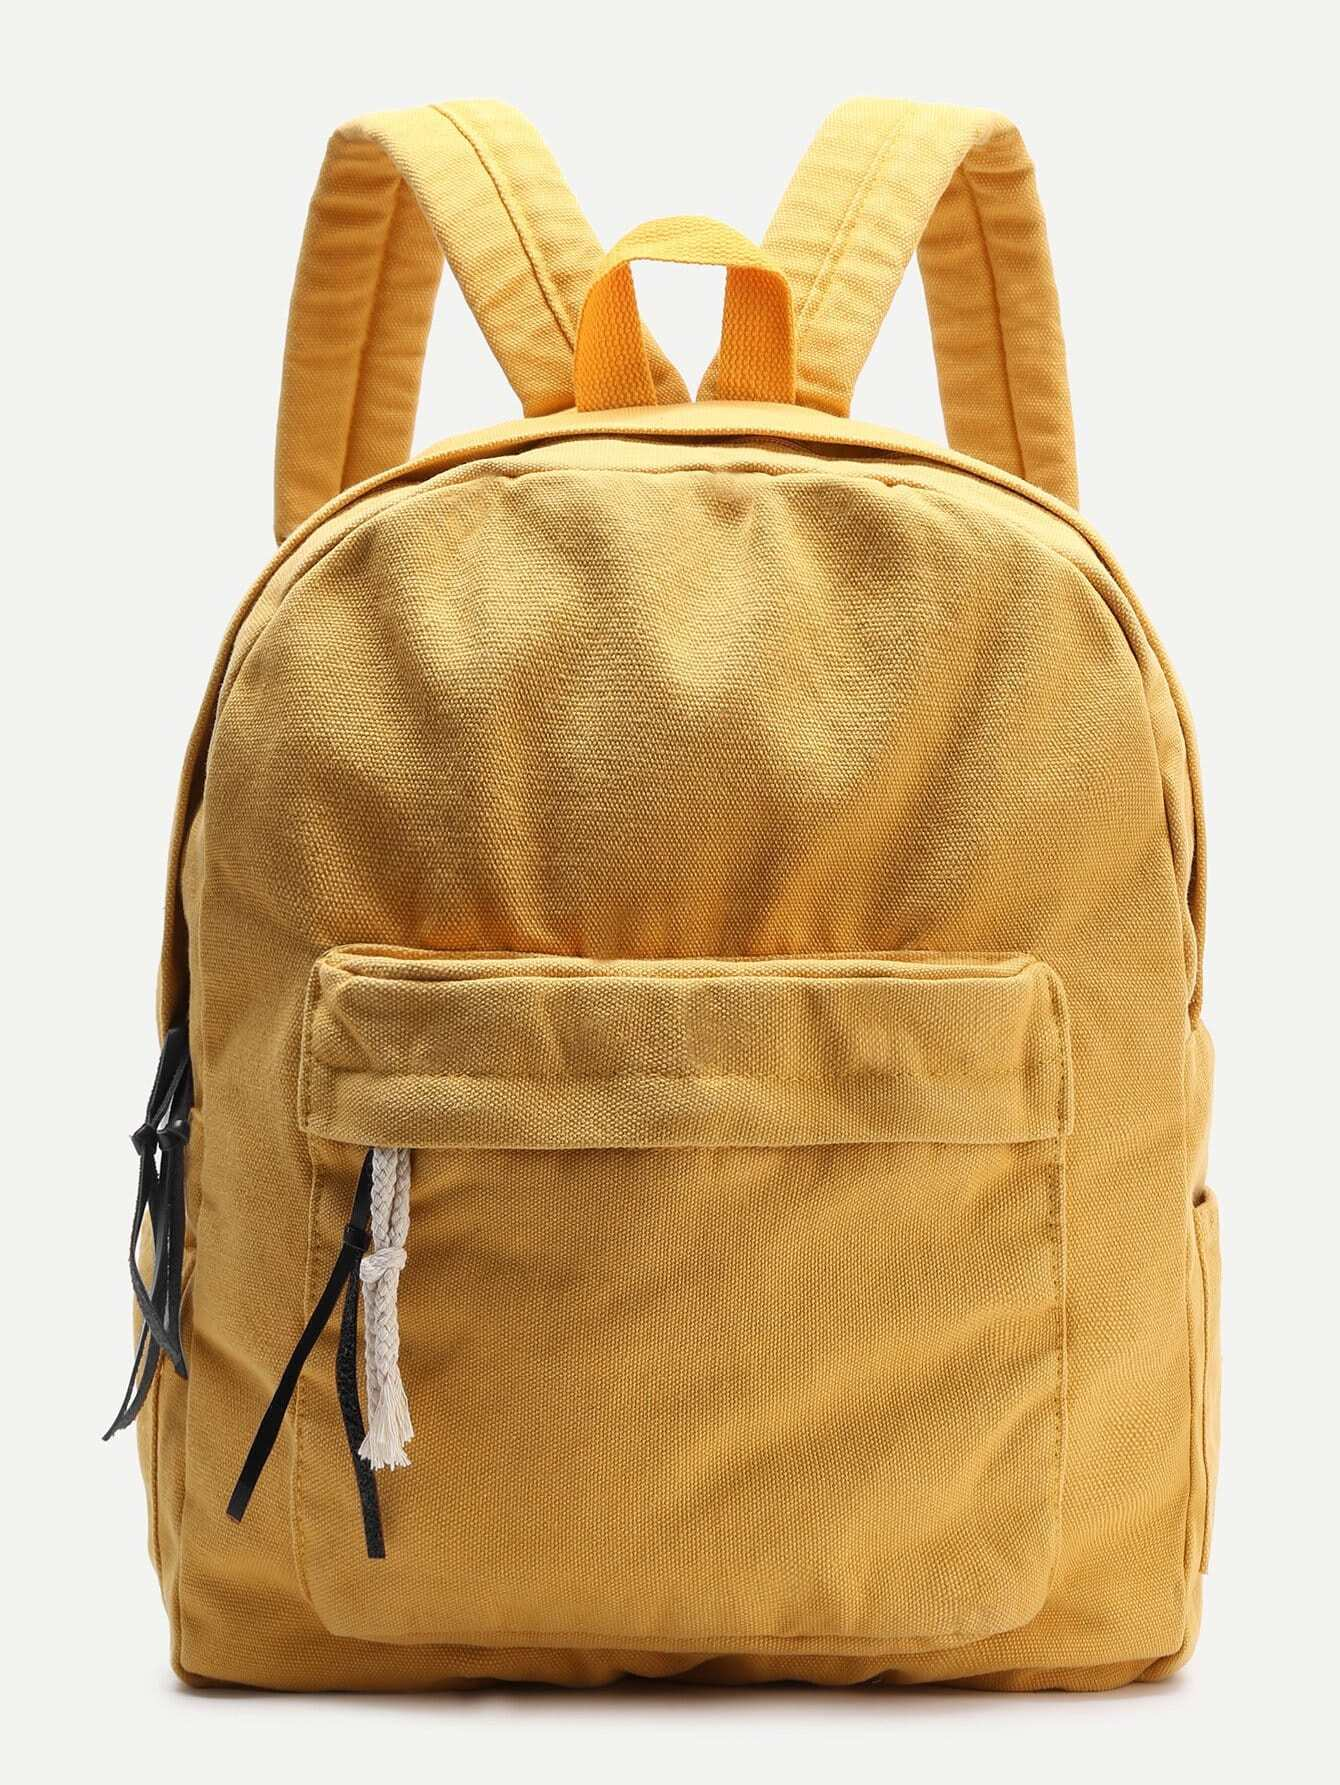 70af37132247 Yellow Zipper Front Canvas Backpack EmmaCloth-Women Fast Fashion Online